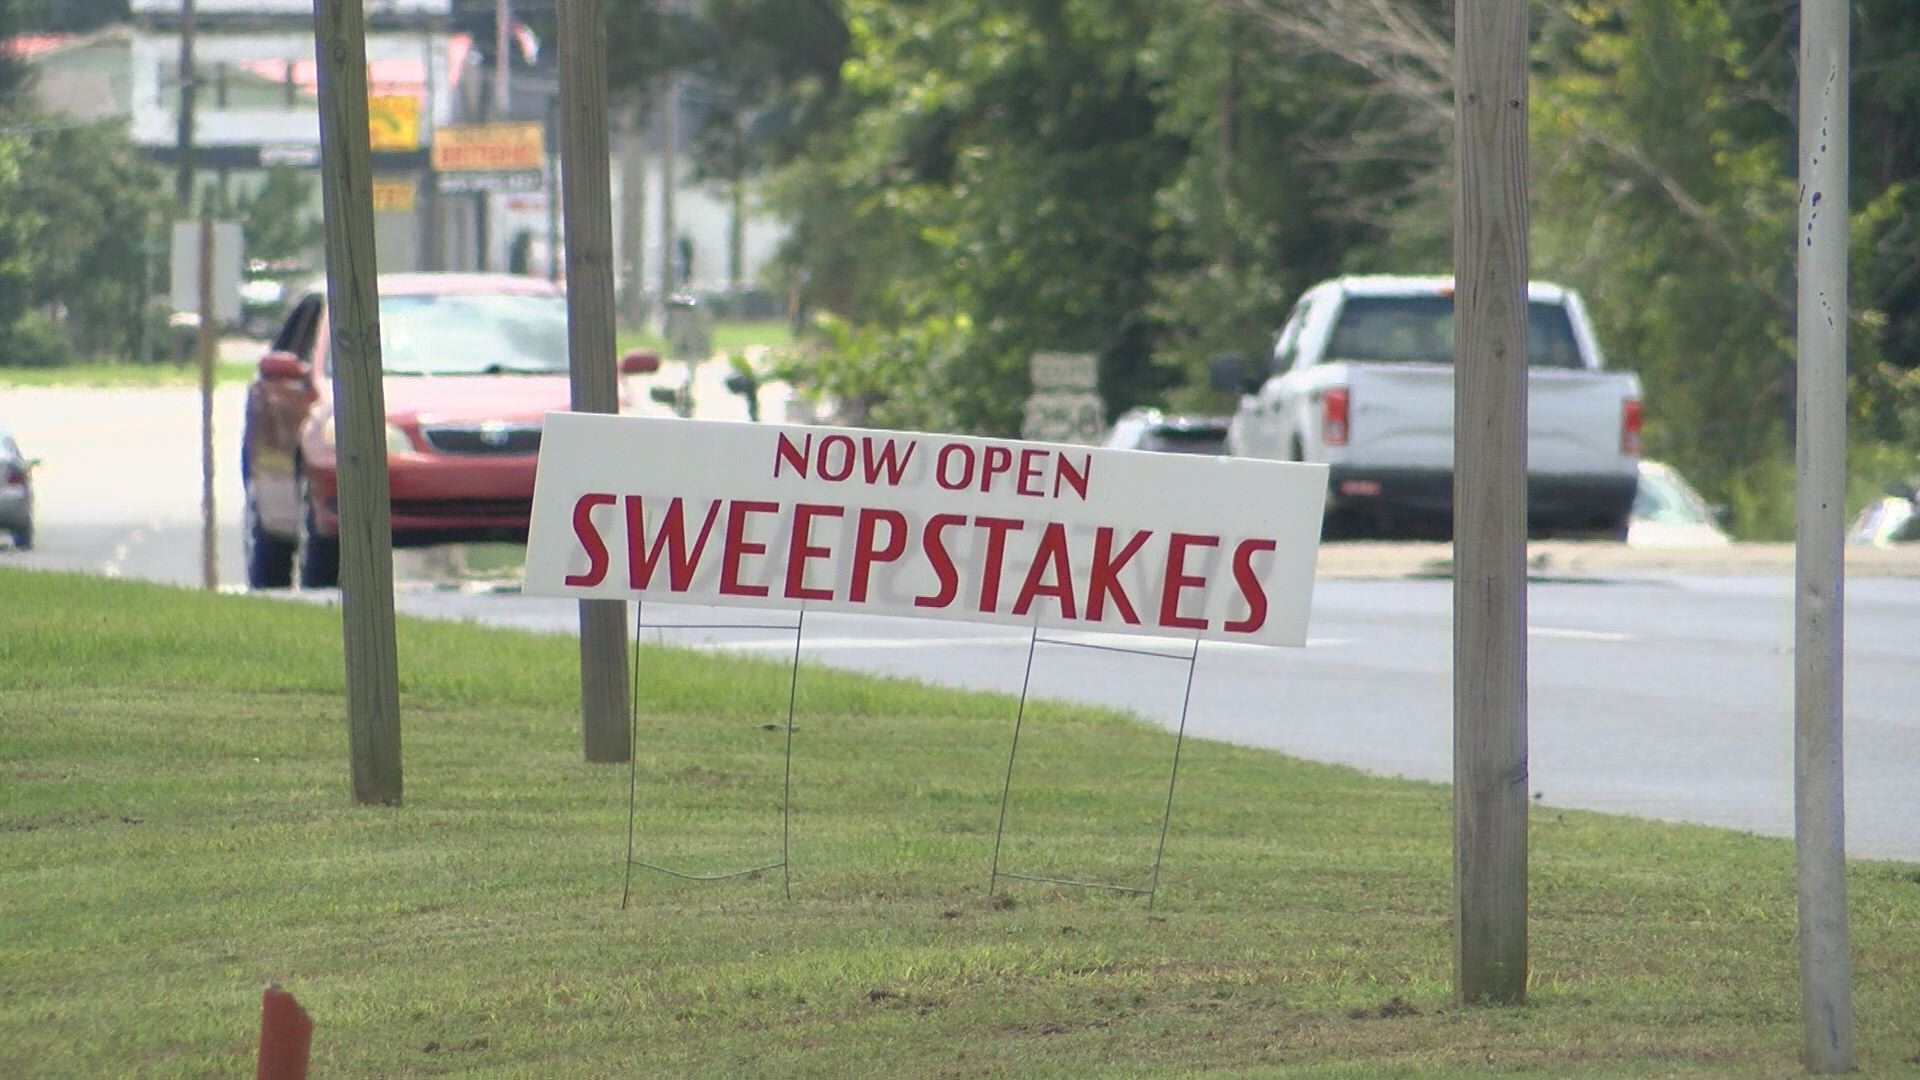 Court ruling allows internet sweepstakes to open temporarily in NC